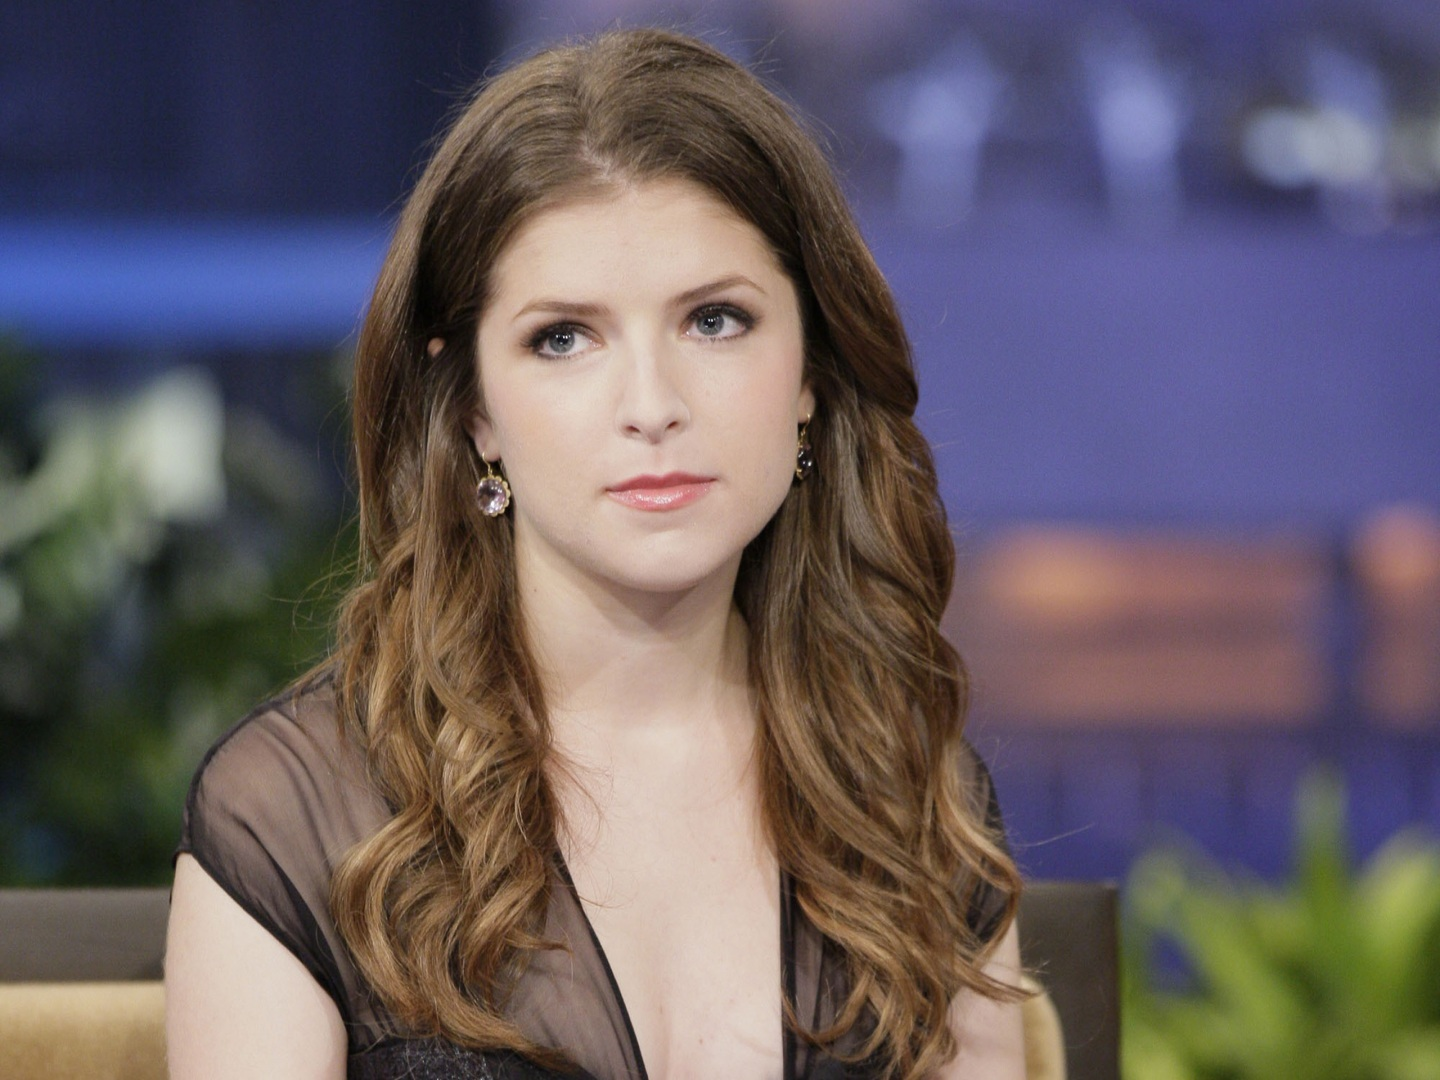 anna-kendrick-at-tonight-show-%C3%971080-wallpaper-wp3602618